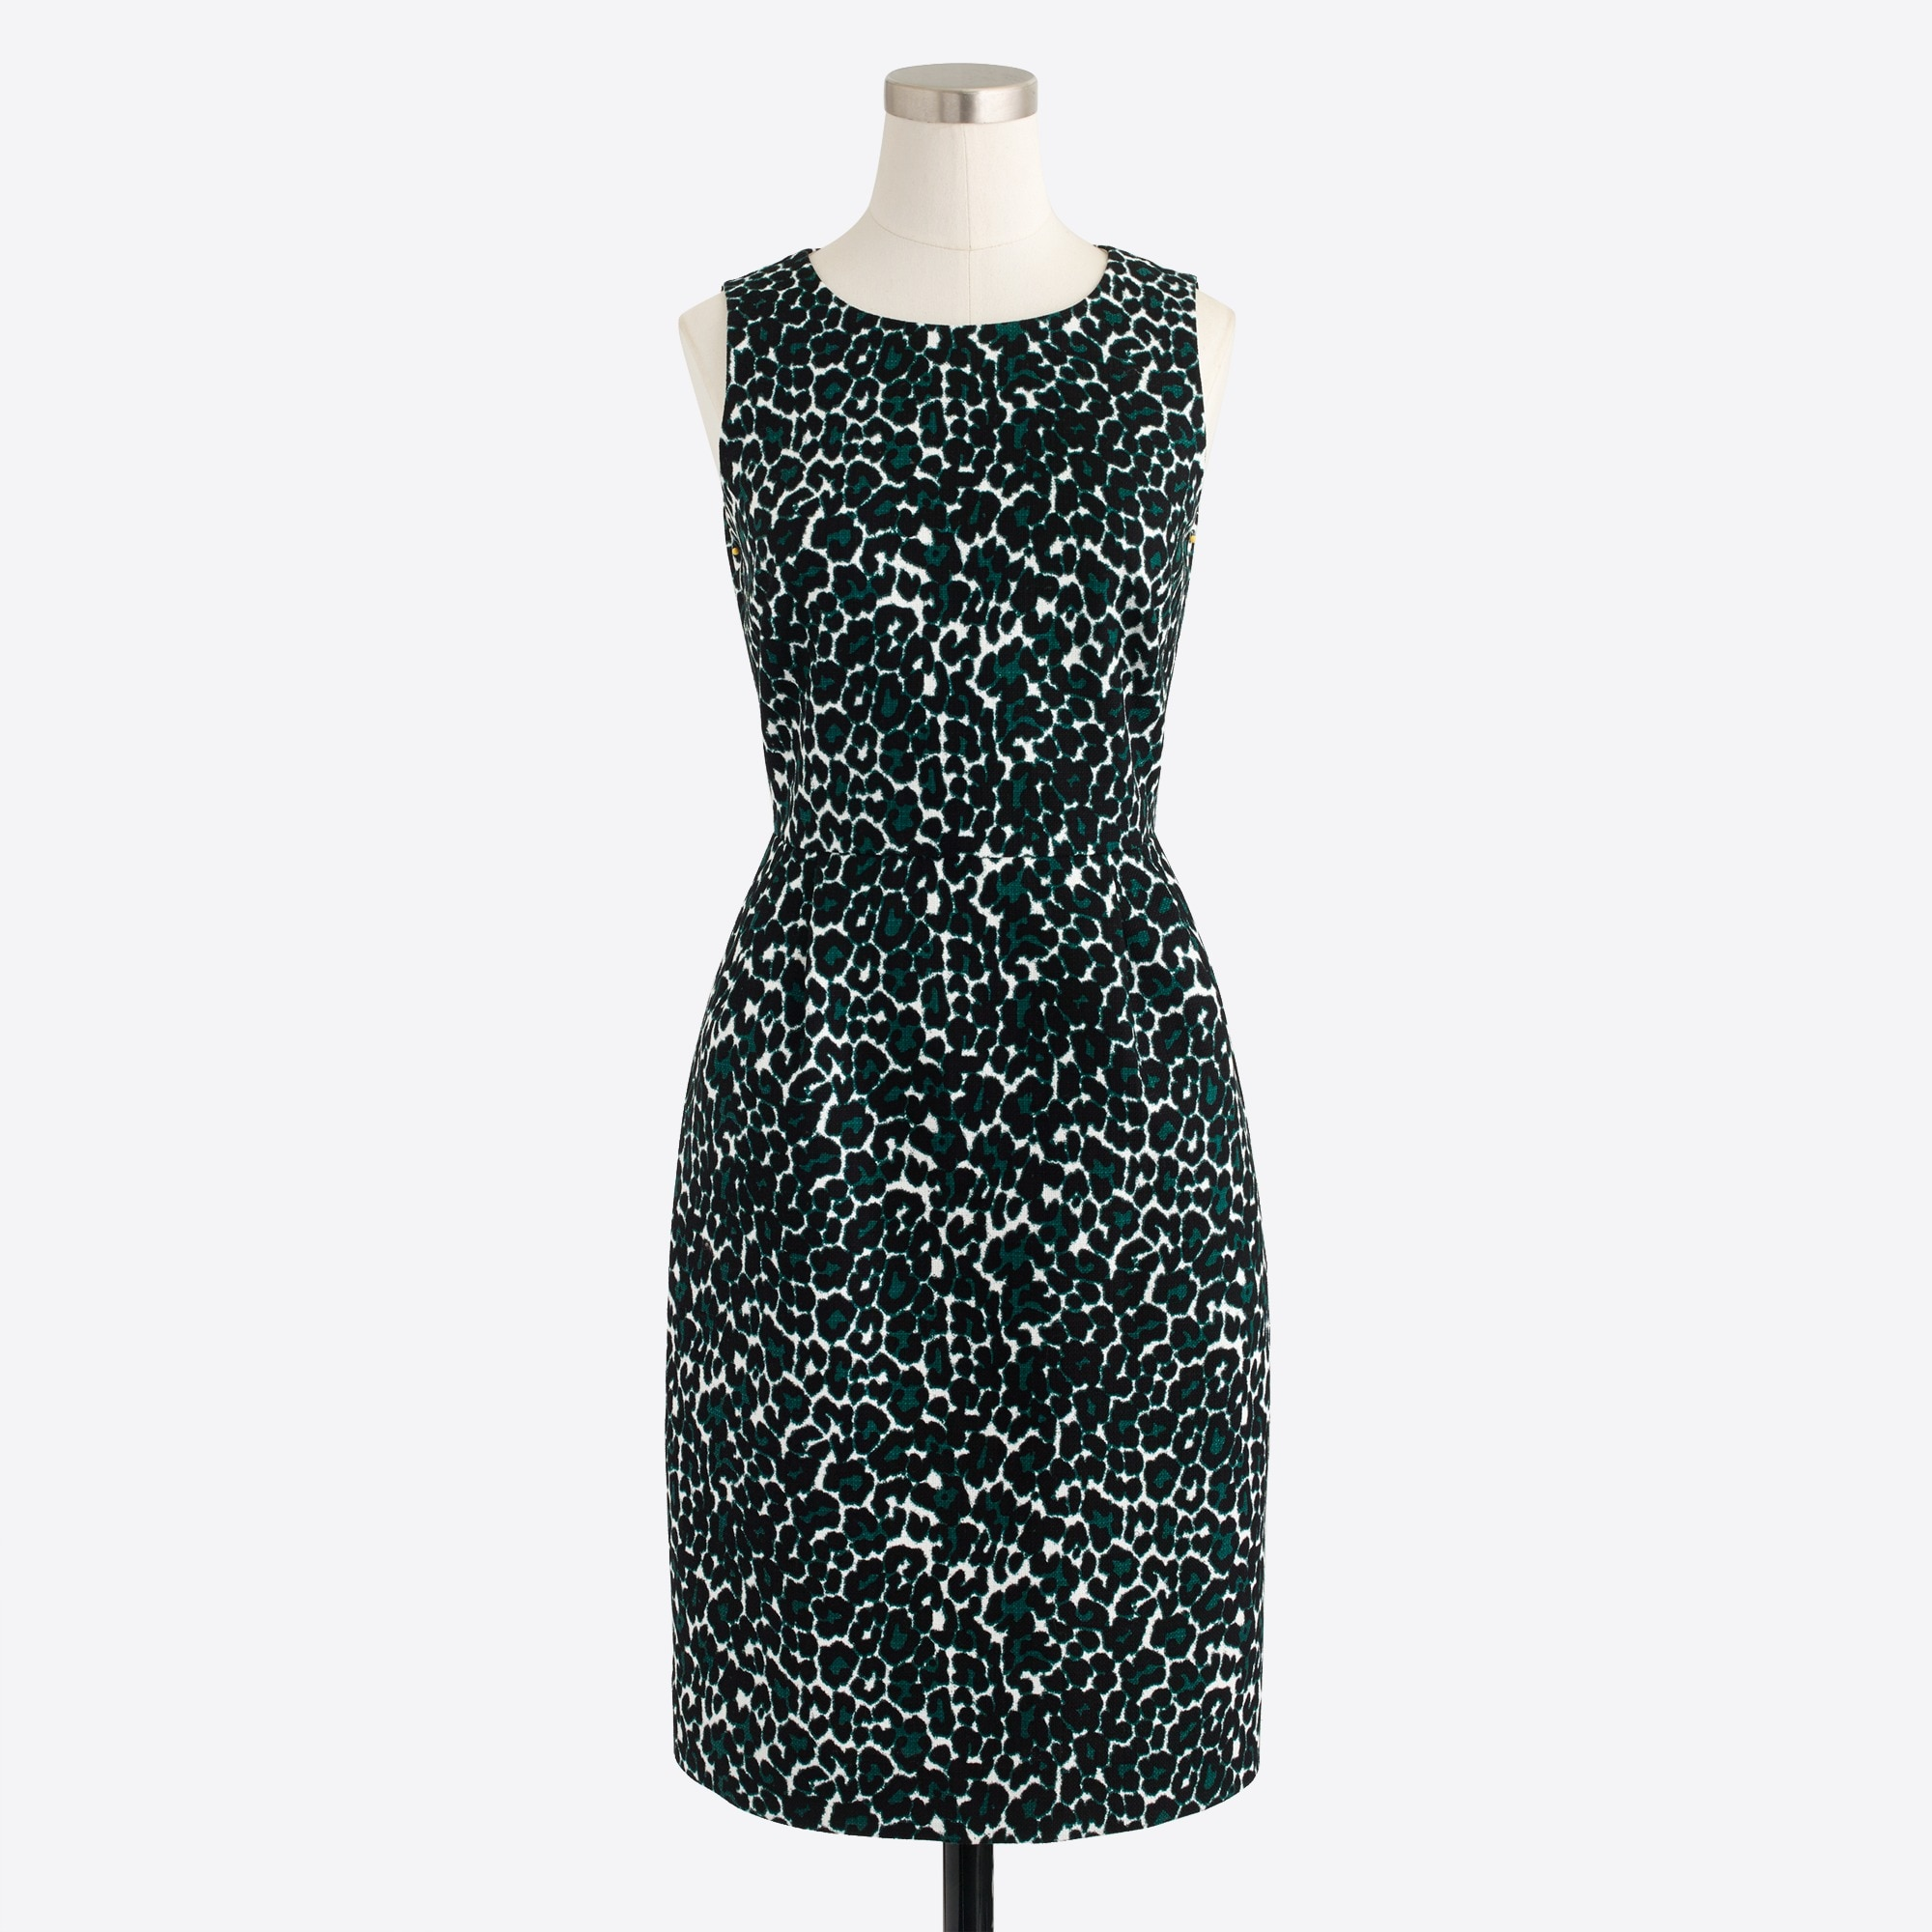 printed textured cotton dress : factorywomen party